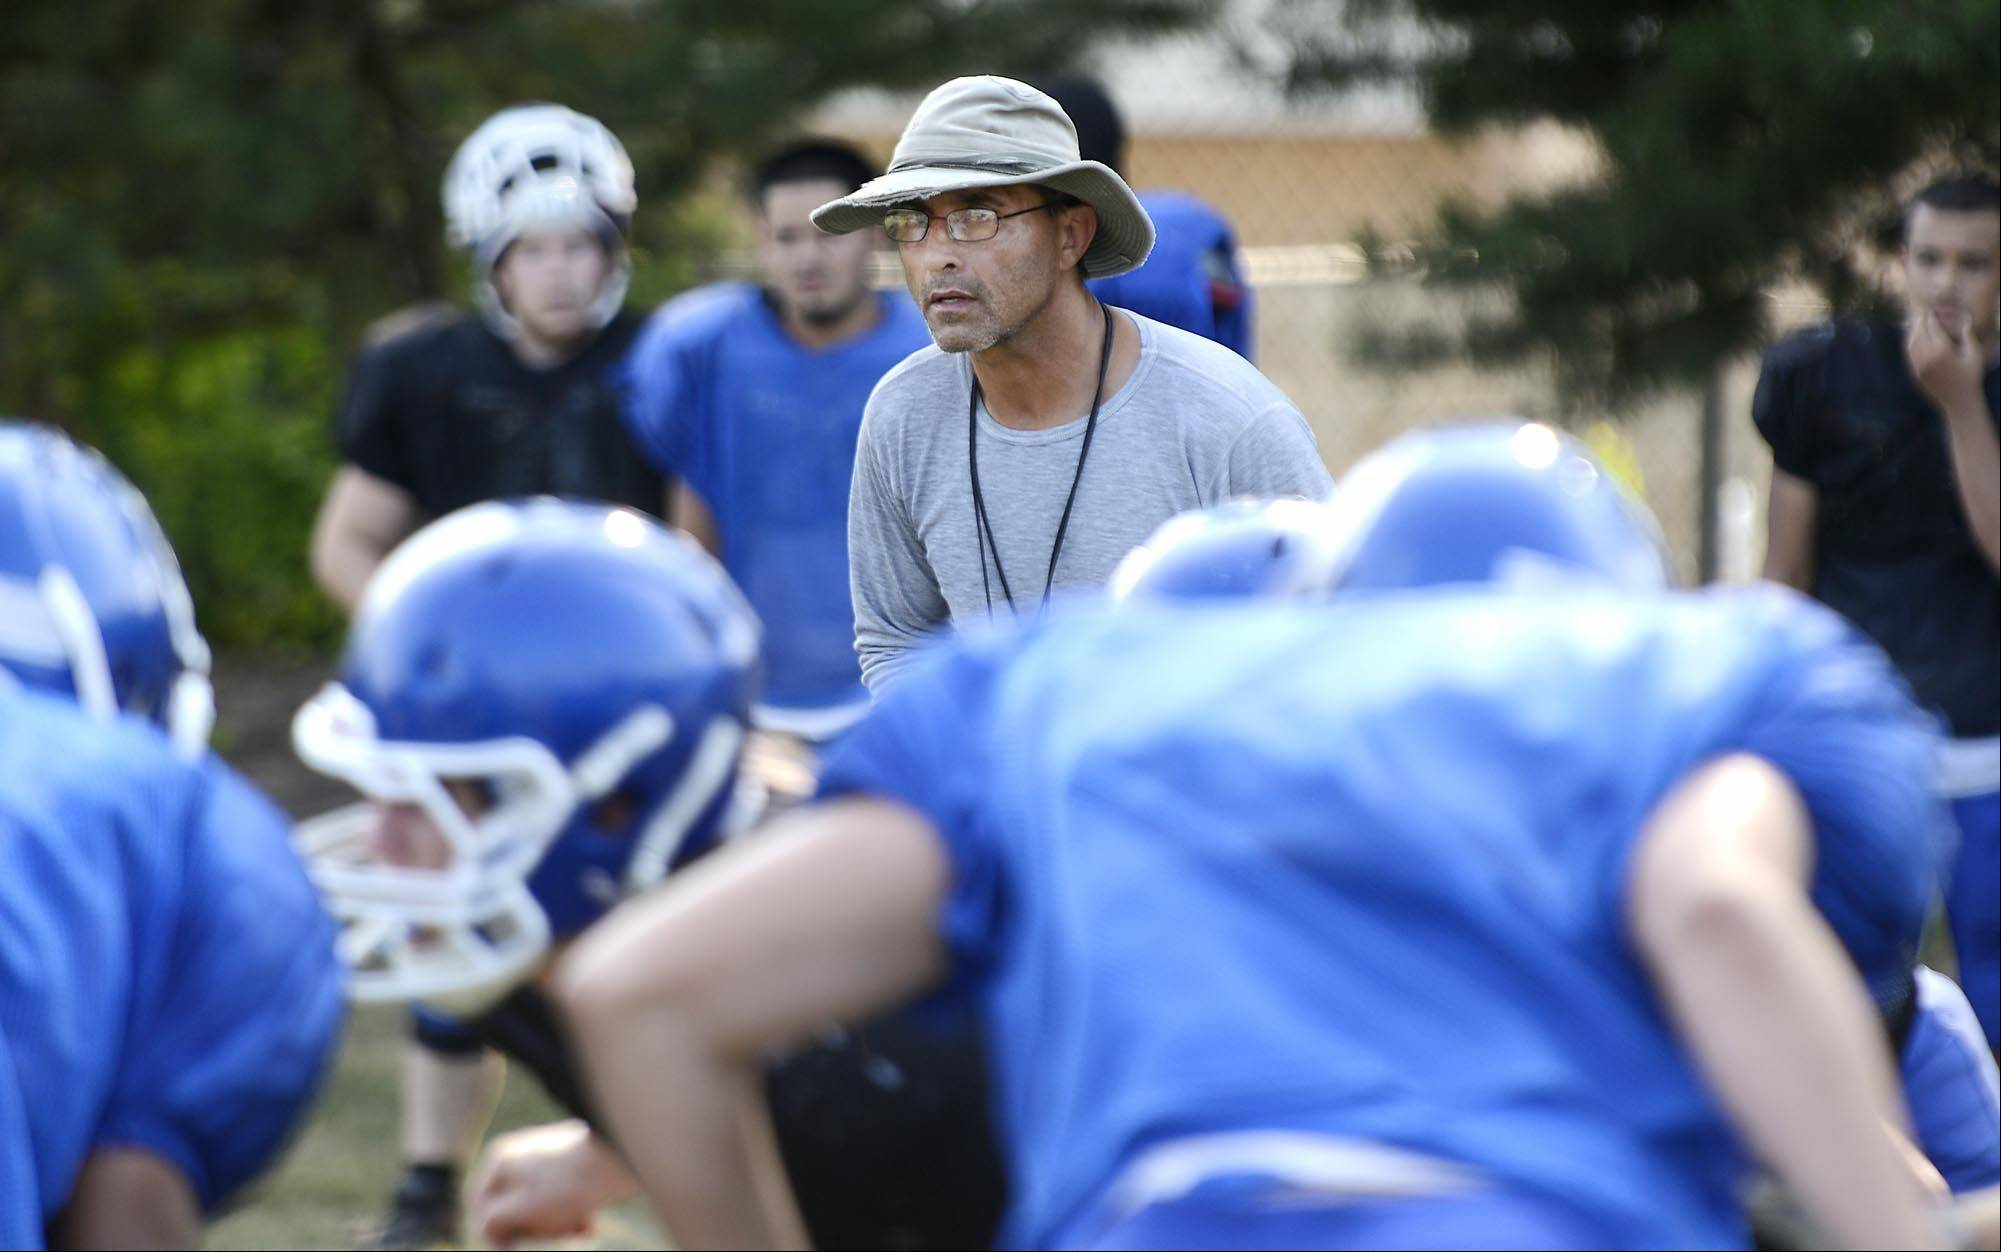 Third-year coach Vito Andriola has brought a tough coaching style to Carpentersville, but it's working as the Chargers are 3-0 heading into Friday's showdown at Cary-Grove.